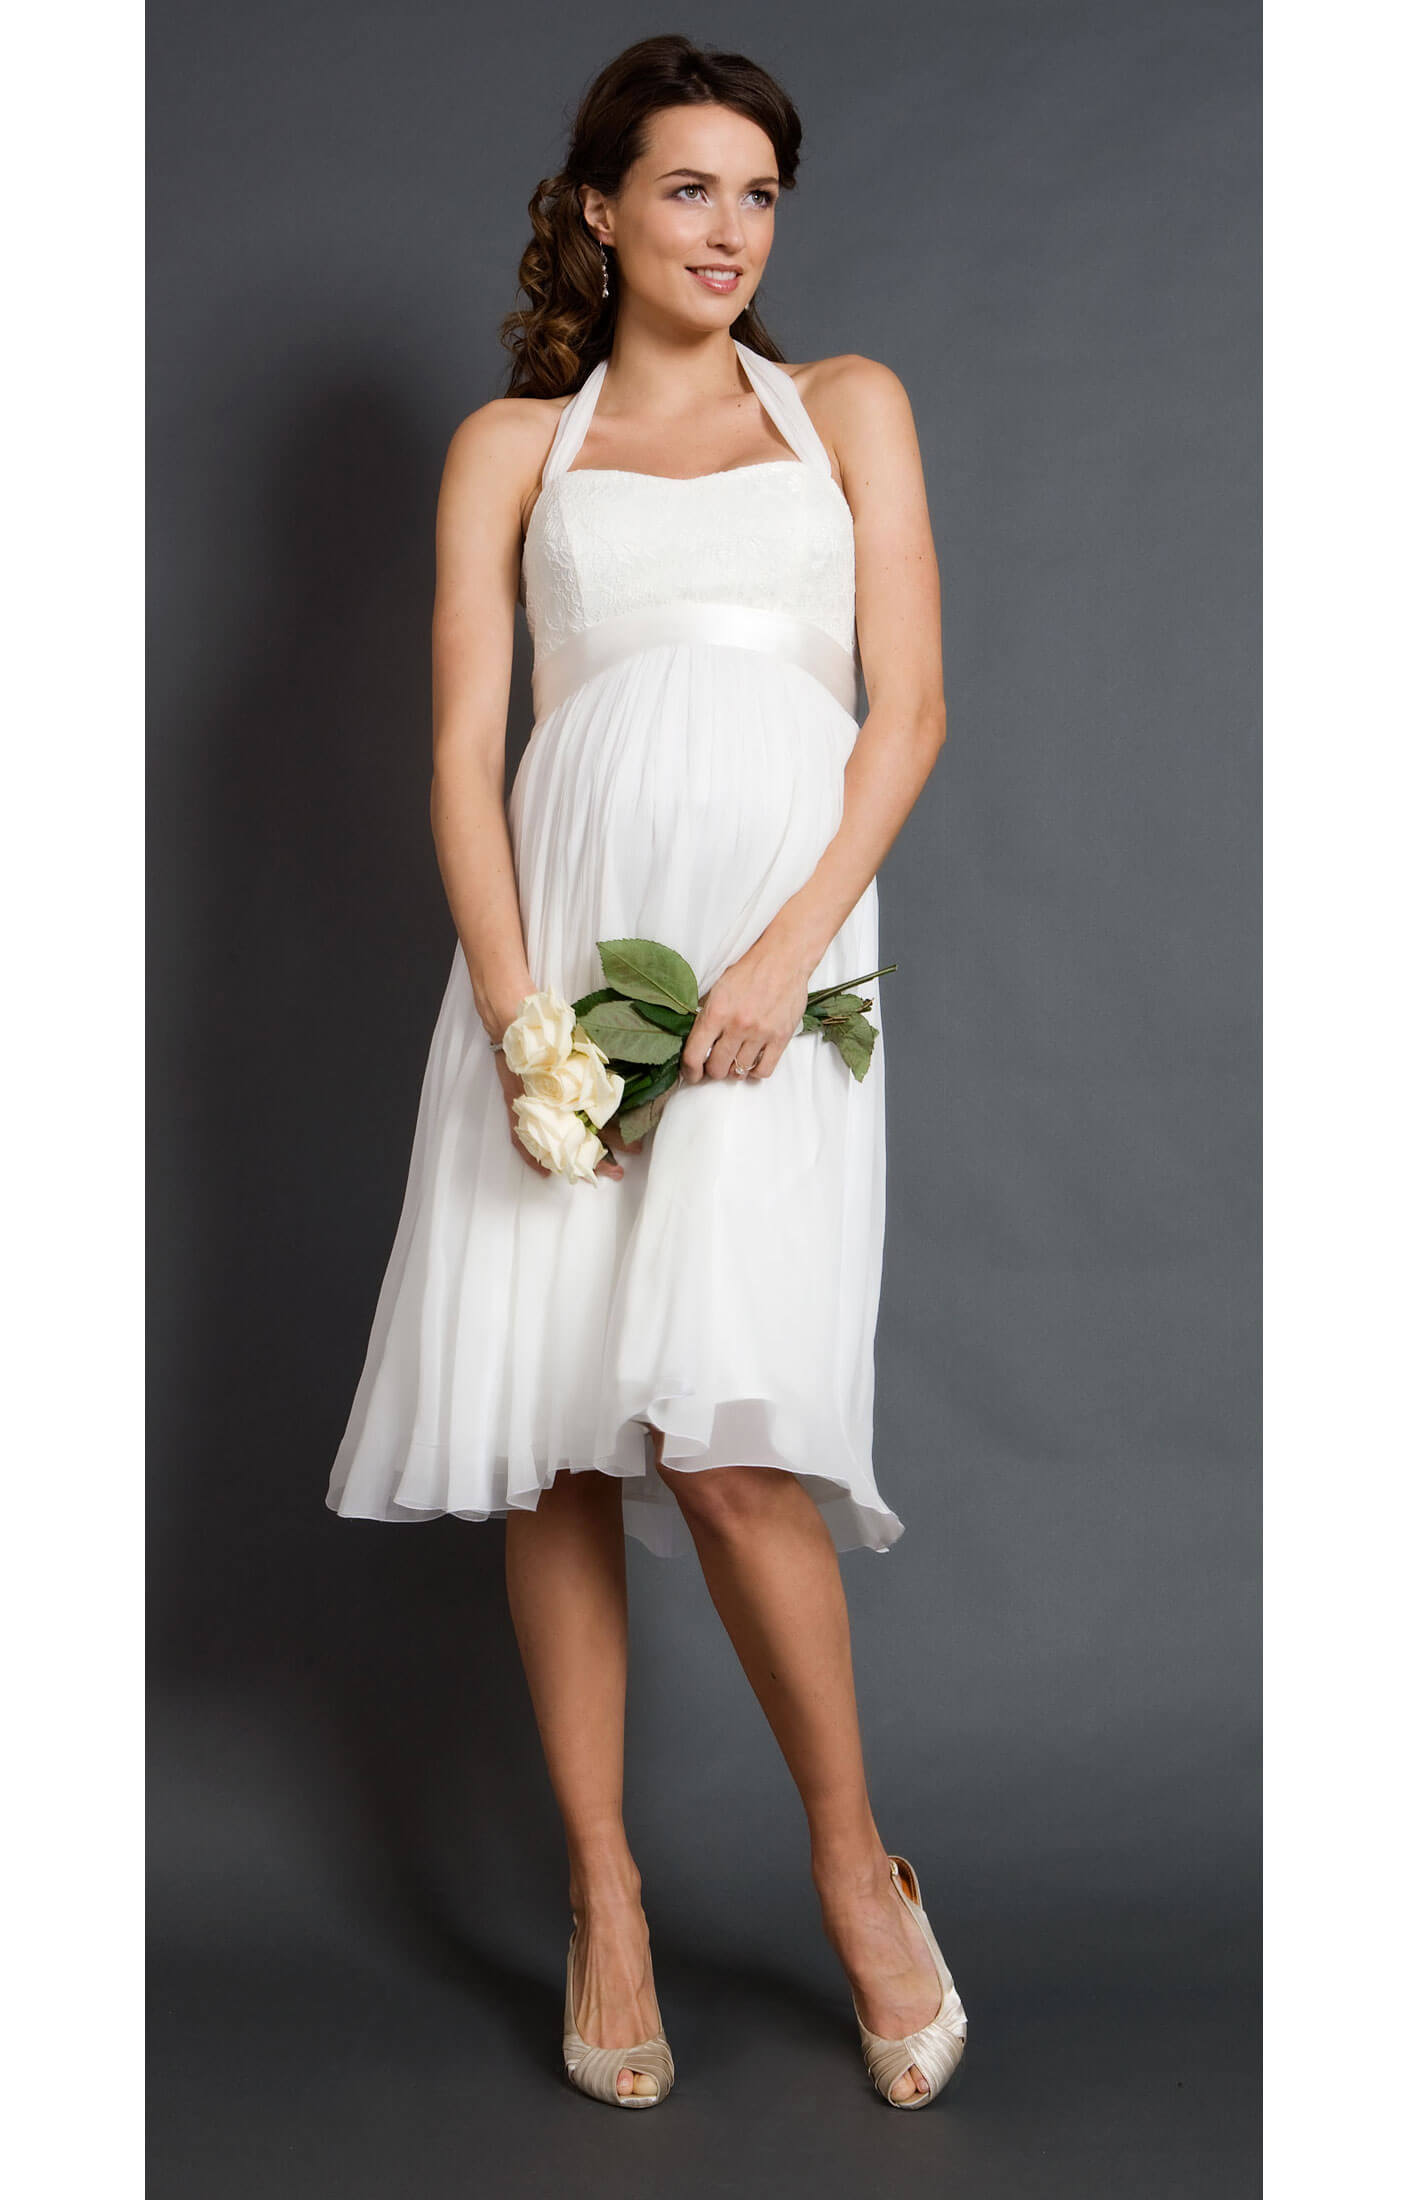 ALYLS zoom Pregnant wedding dress